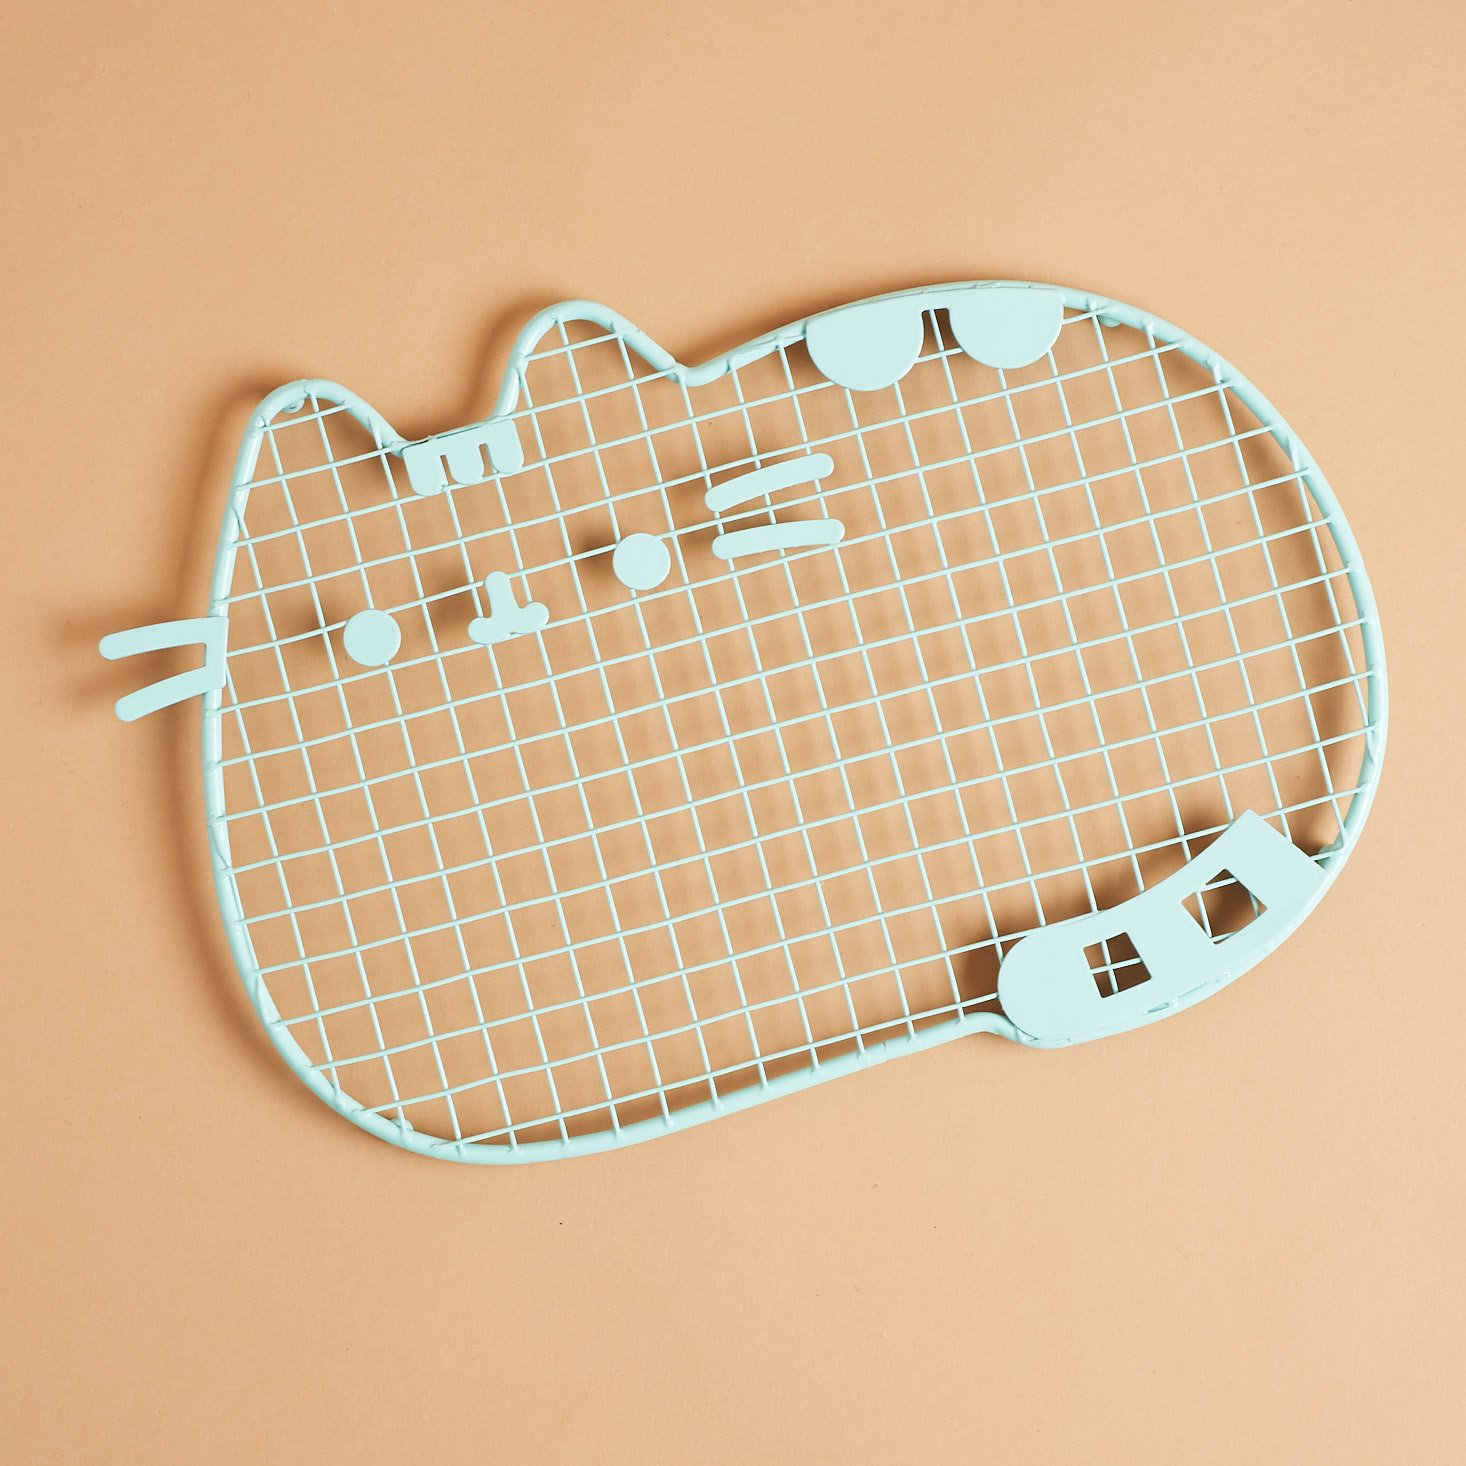 Pusheen Cooling Rack